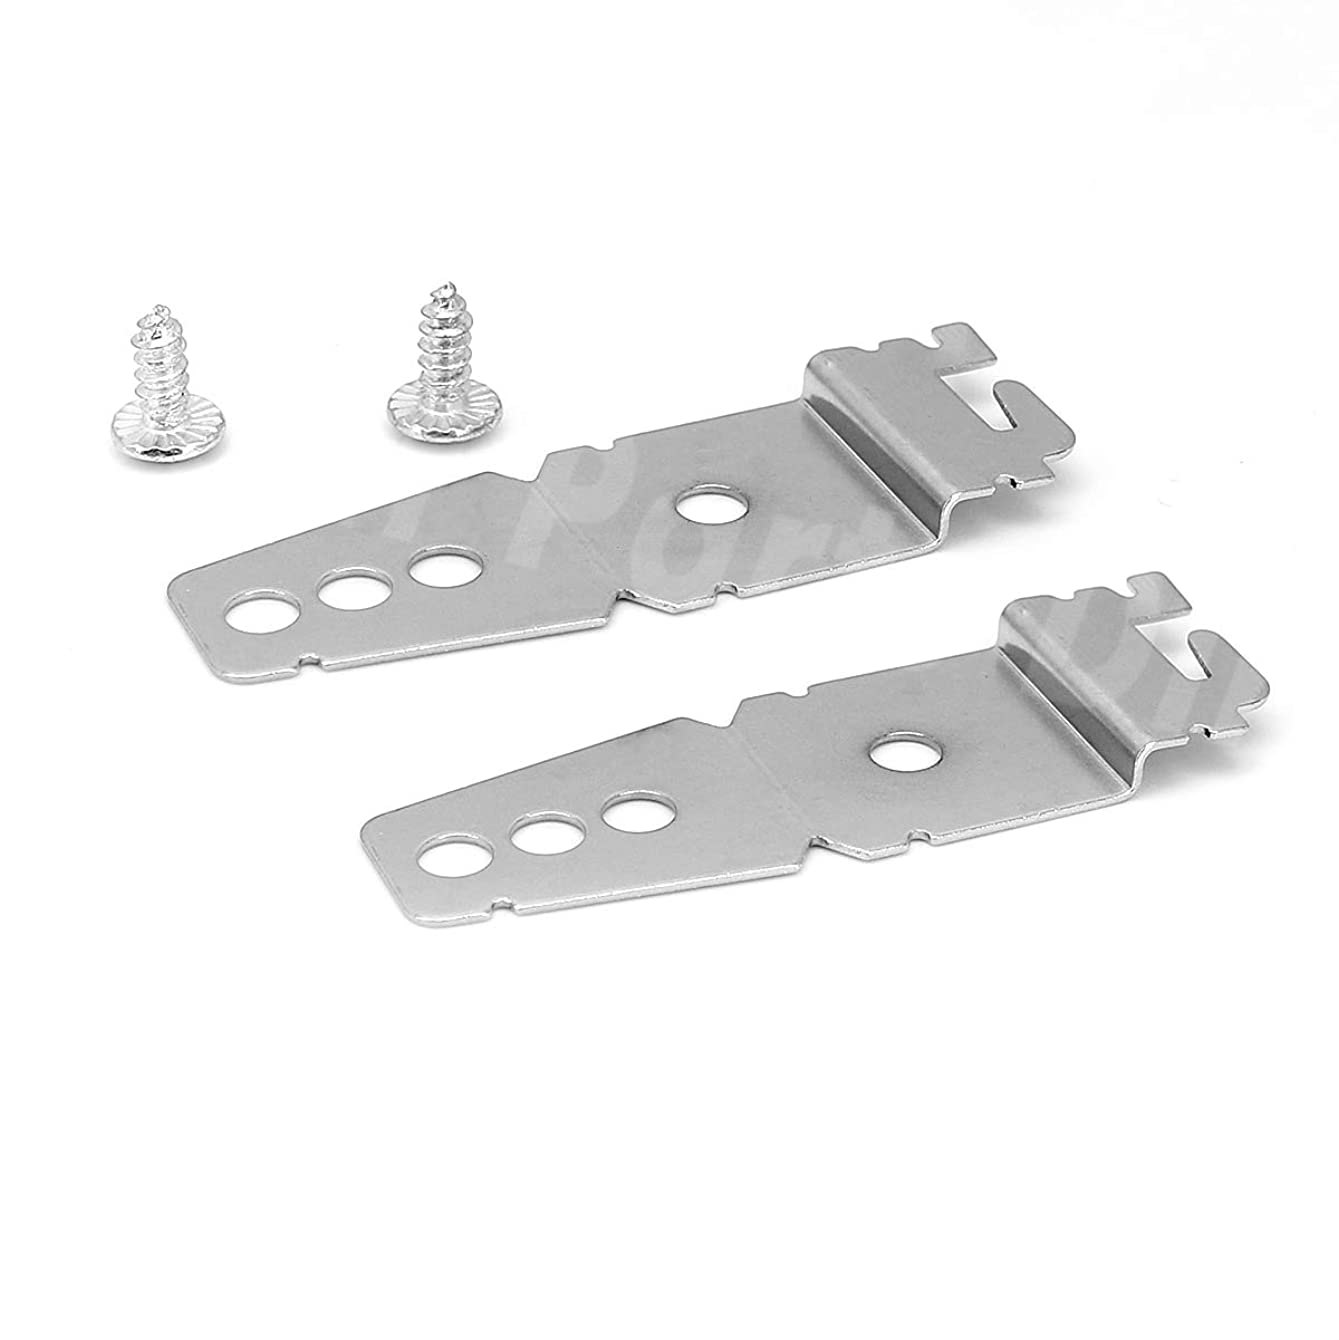 Ultra Durable 8269145 Mounting Bracket Replacement Parts Exact Fit for Kenmore Whirlpool KitchenAid Dishwasher, Replaces 8269145 WP8269145VP